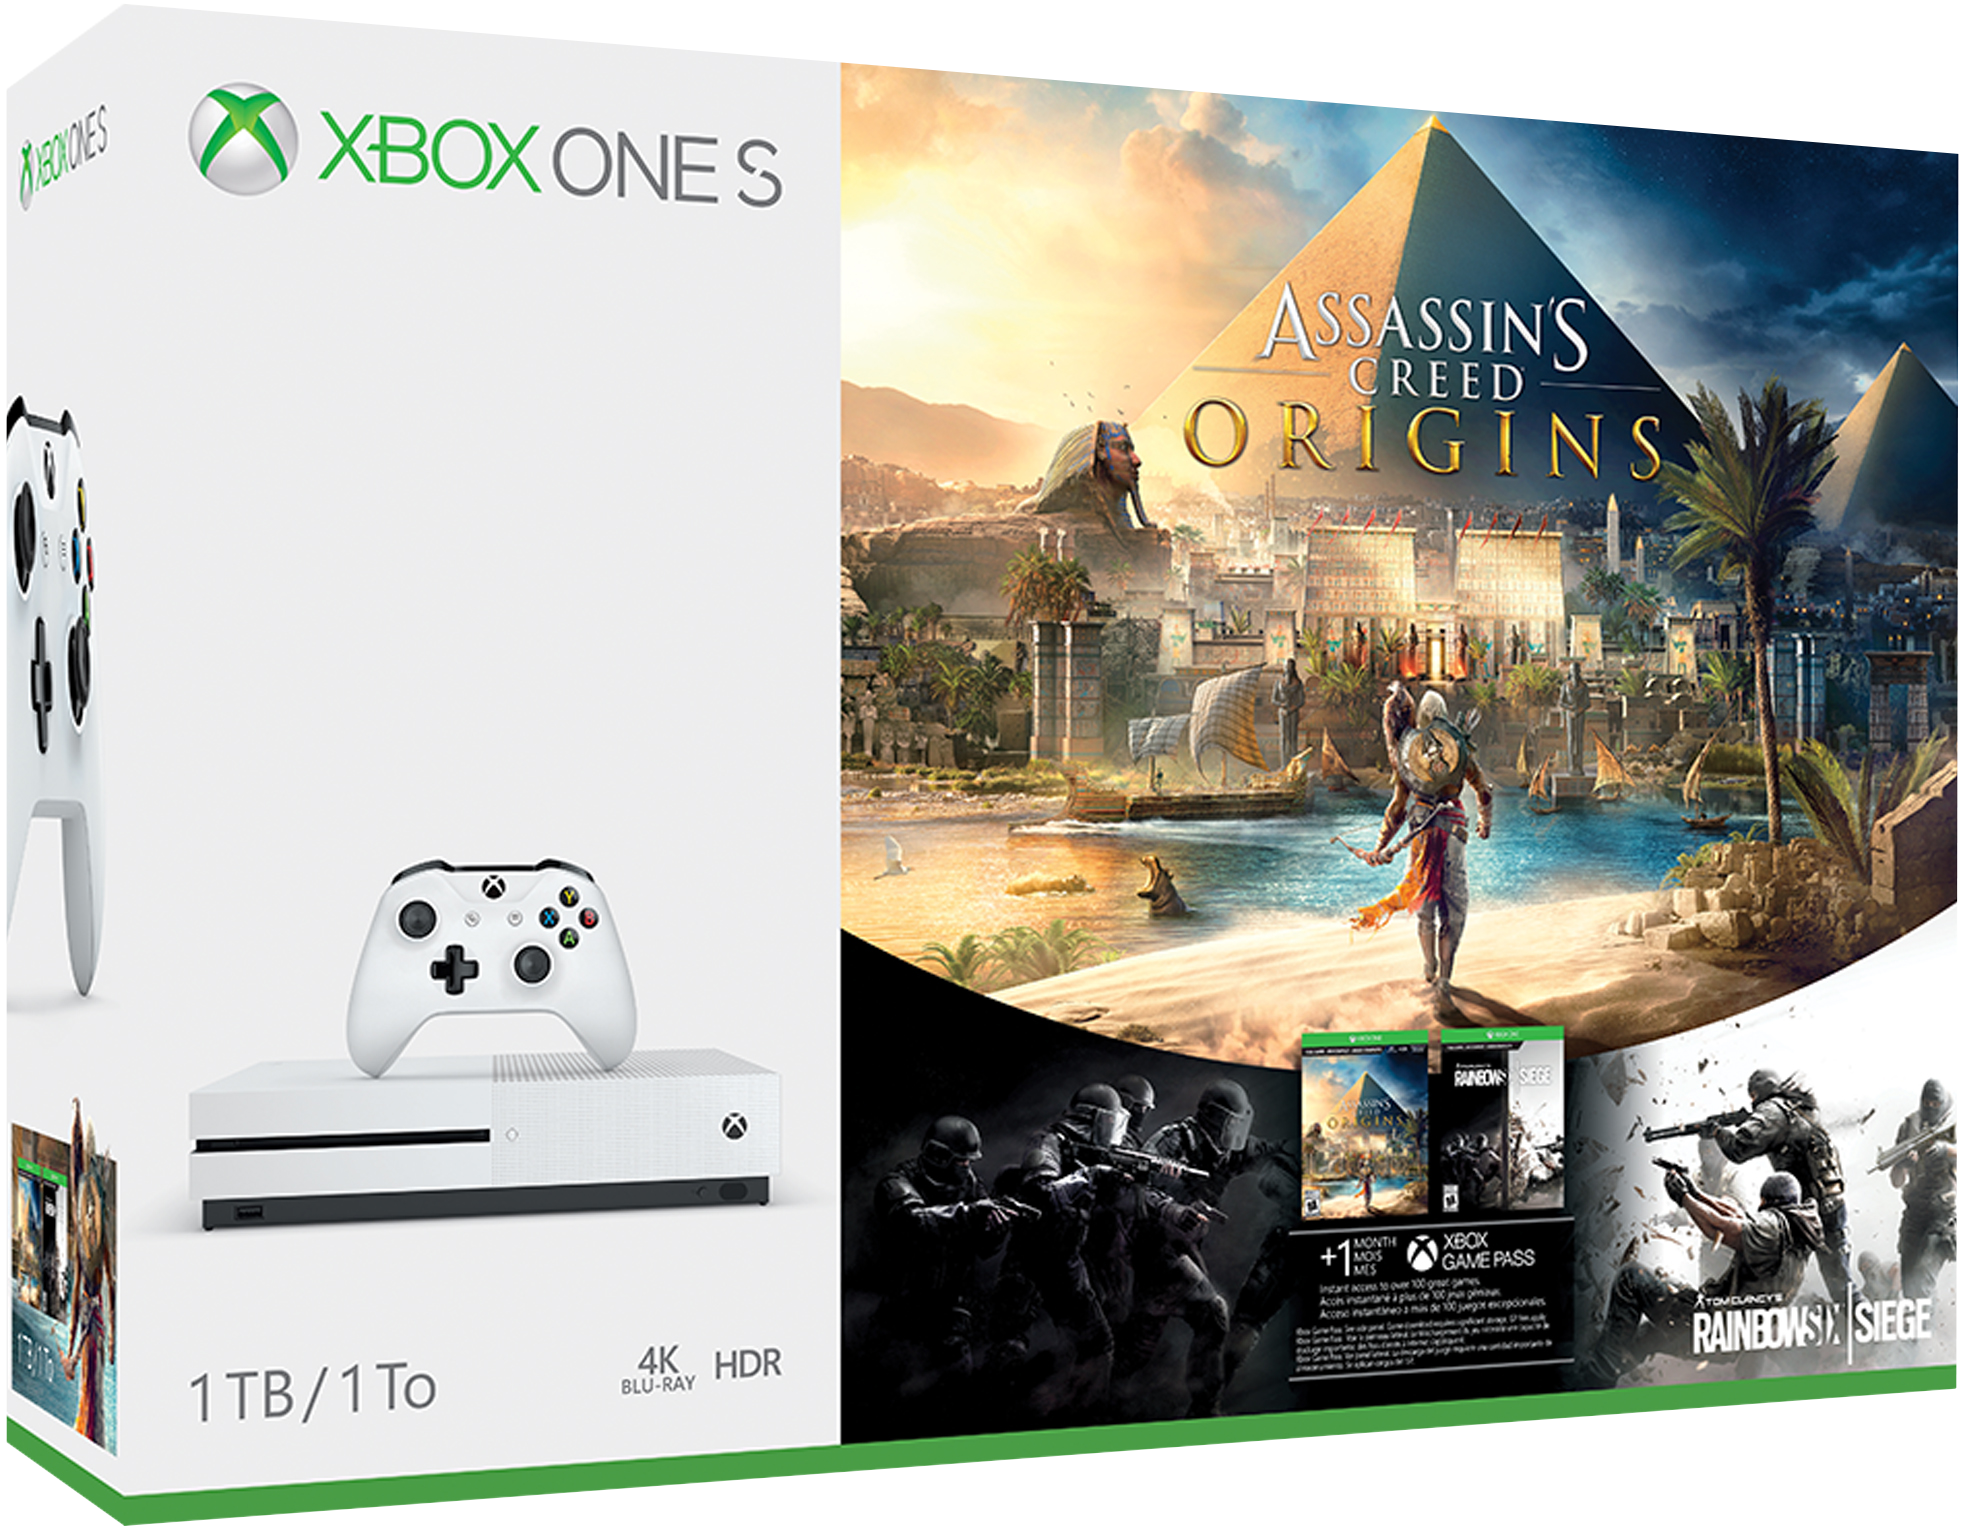 Xbox One S – Assassin's Creed Origins Bundle